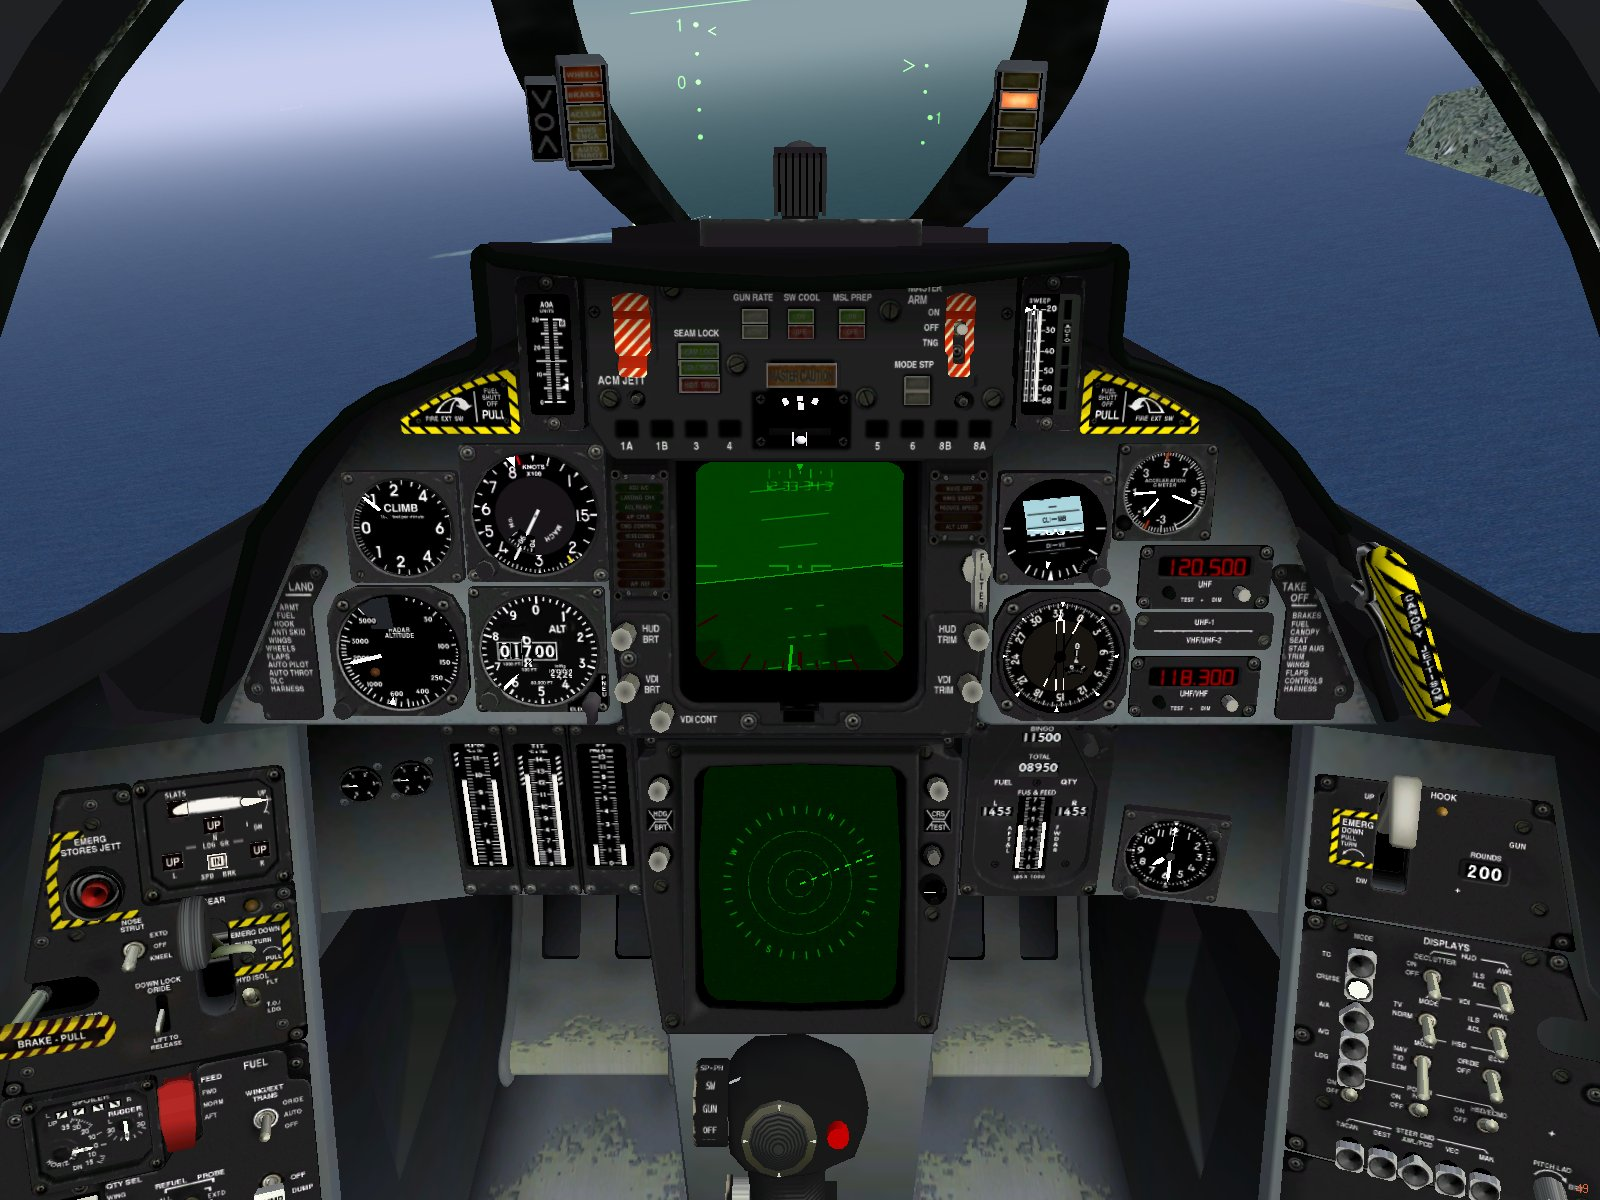 FileF-14 cockpit jpg F 14 Tomcat Cockpit